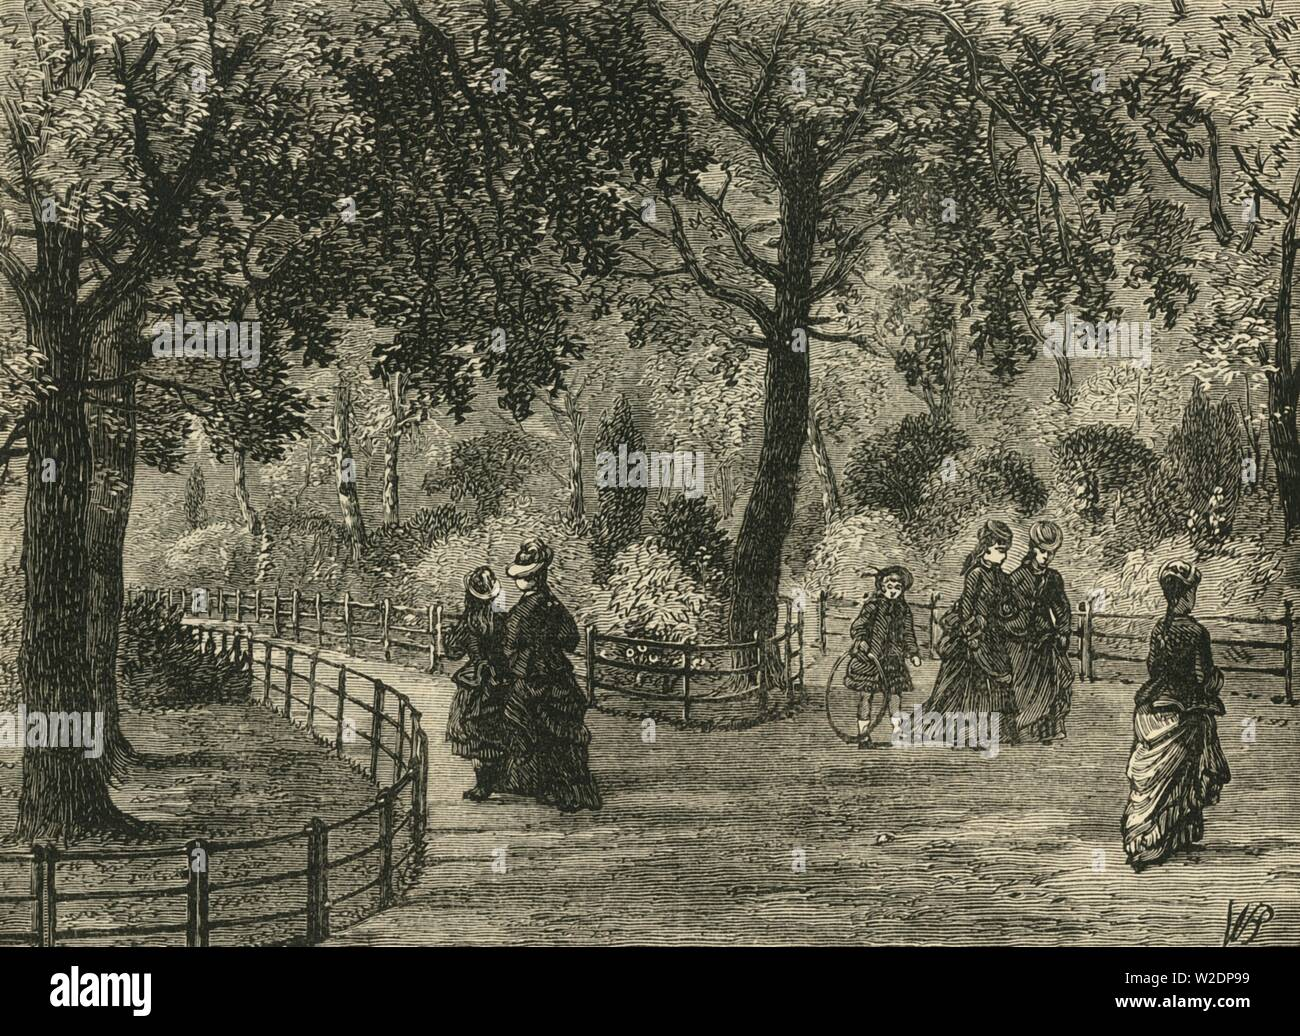 """'The Flower Walks, Kensington Gardens', c1876. Kensington Gardens, once private gardens of Kensington Palace, originally created by Henry VIII in 1536 for use as a hunting ground, Queen Caroline requested they be separated from Hyde Park in 1728. From """"Old and New London: A Narrative of Its History, Its People, and Its Places. The Western and Northern Studies"""", by Edward Walford. [Cassell, Petter, Galpin & Co., London, Paris & New York] - Stock Image"""